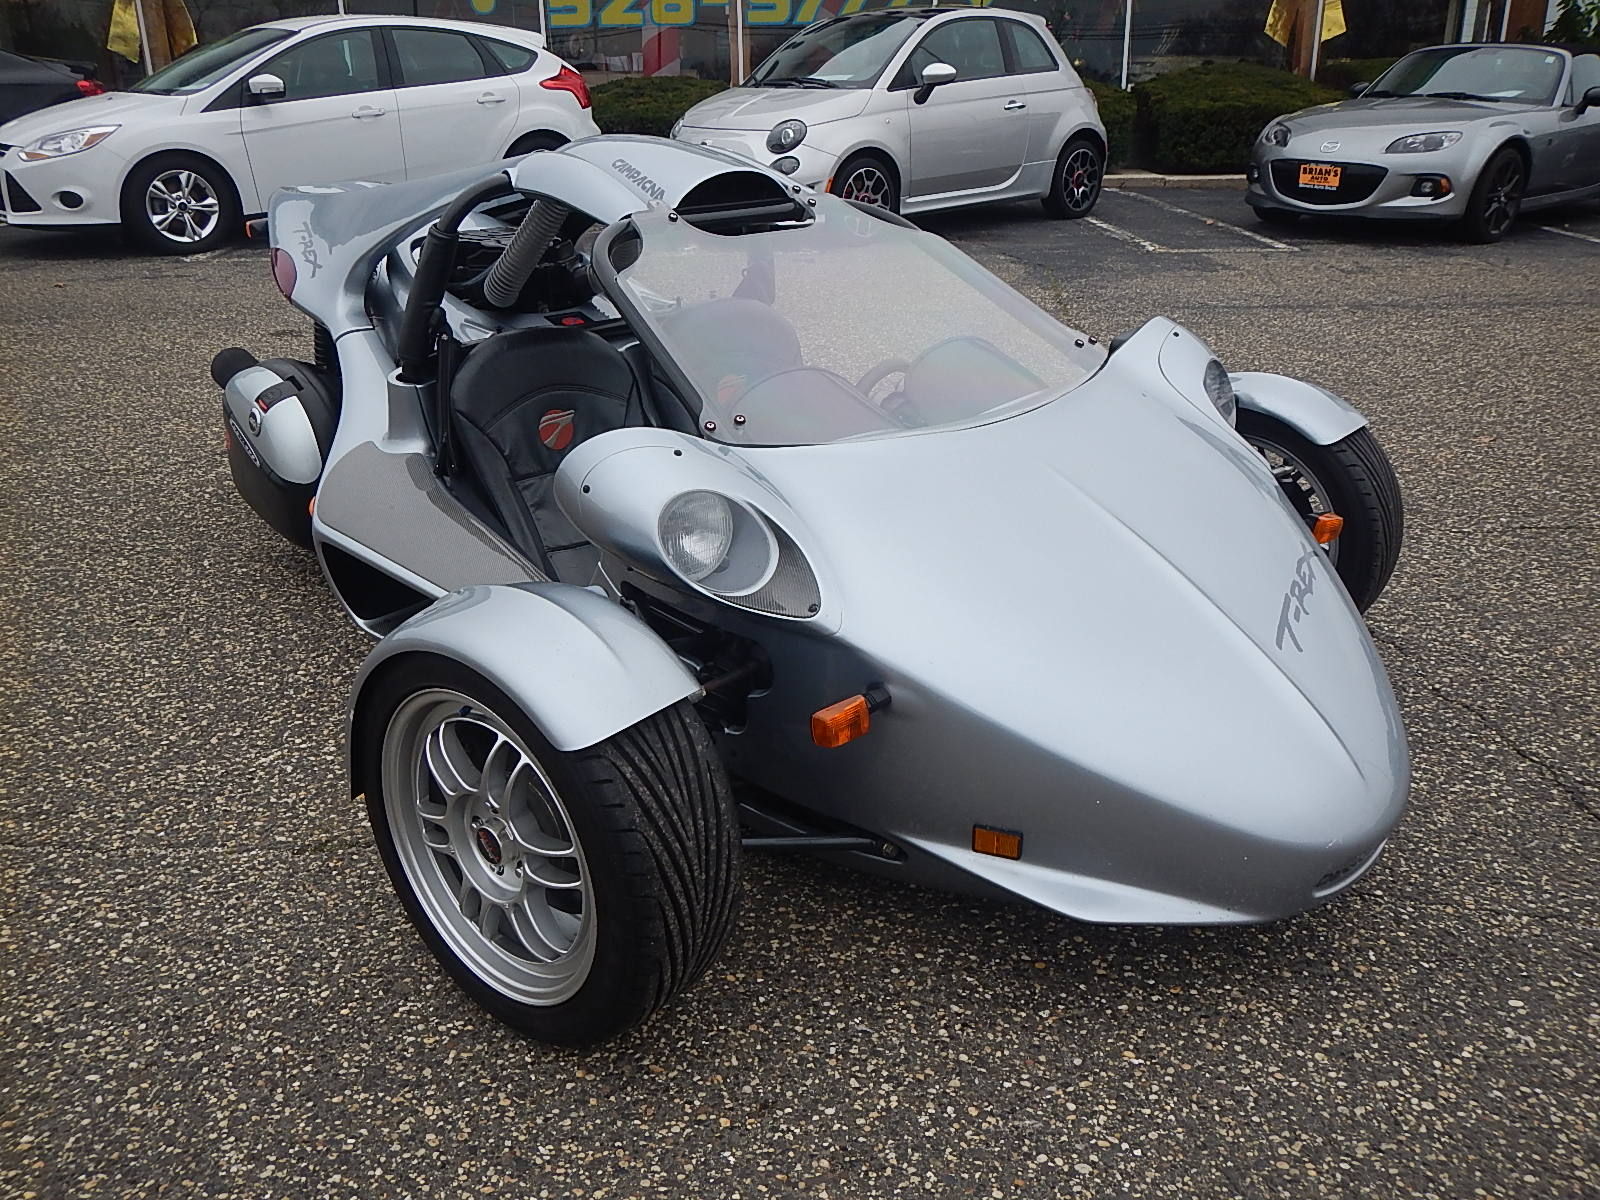 Used 2006 Campagna T REX For Sale